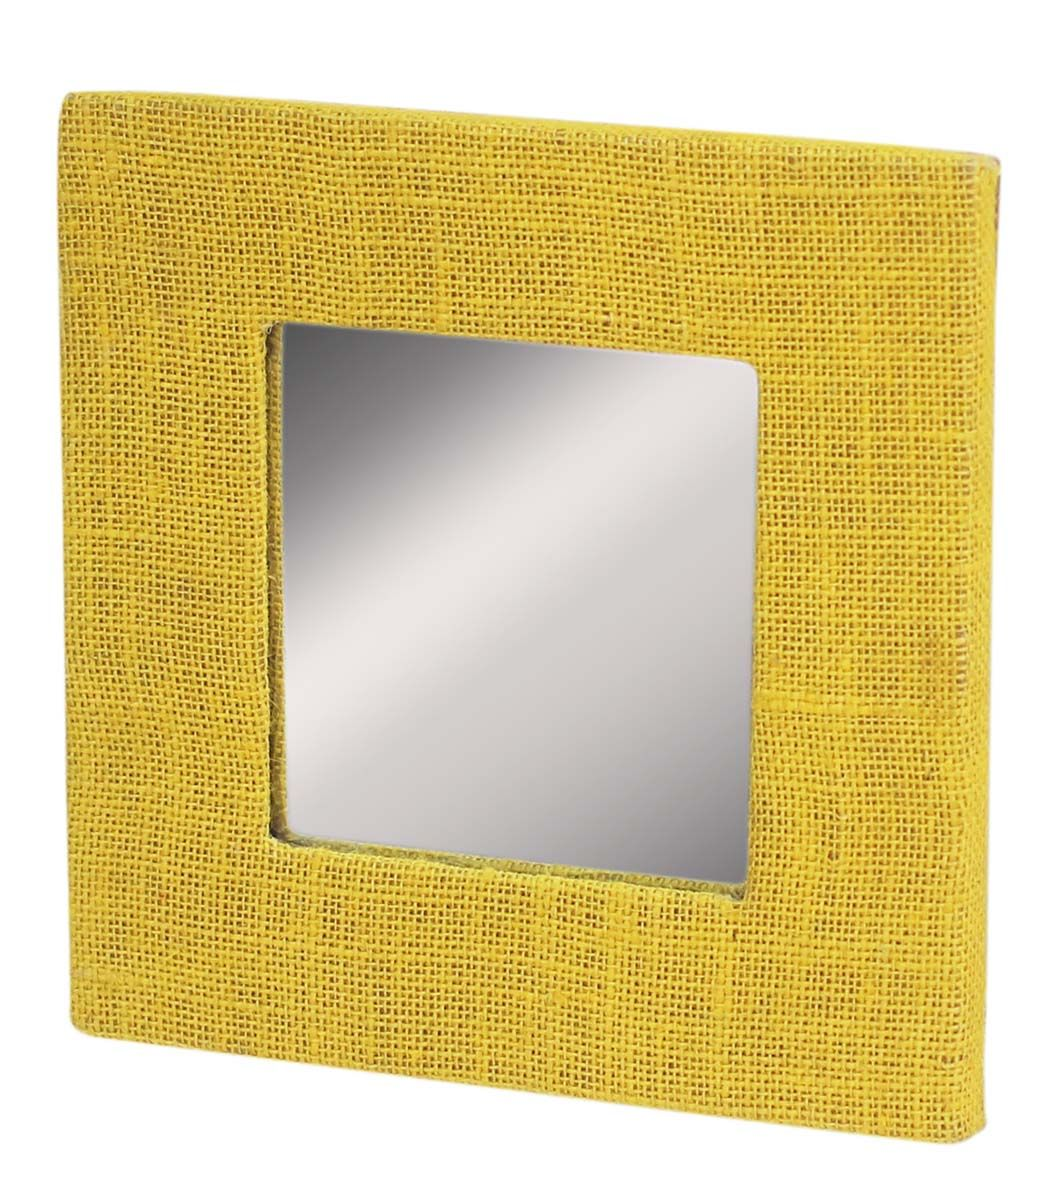 Wholesale Handmade Square-Shaped Mirror in Yellow Color – Framed in ...